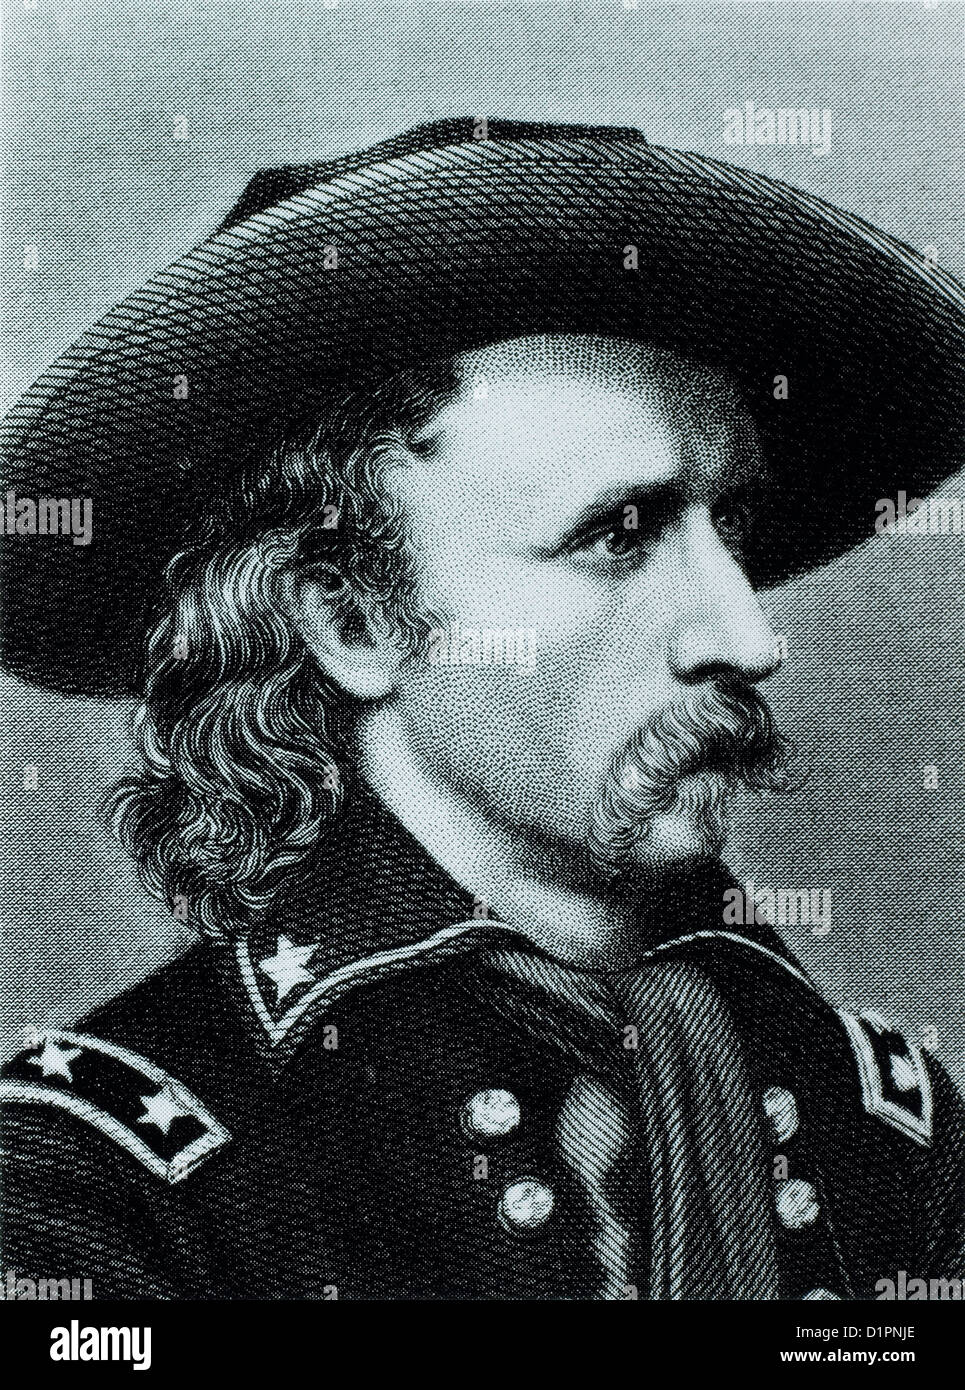 George Custer (1839-1876), American Army Officer, Killed at Battle of Little Big Horn, Illustration, Portrait, Circa - Stock Image